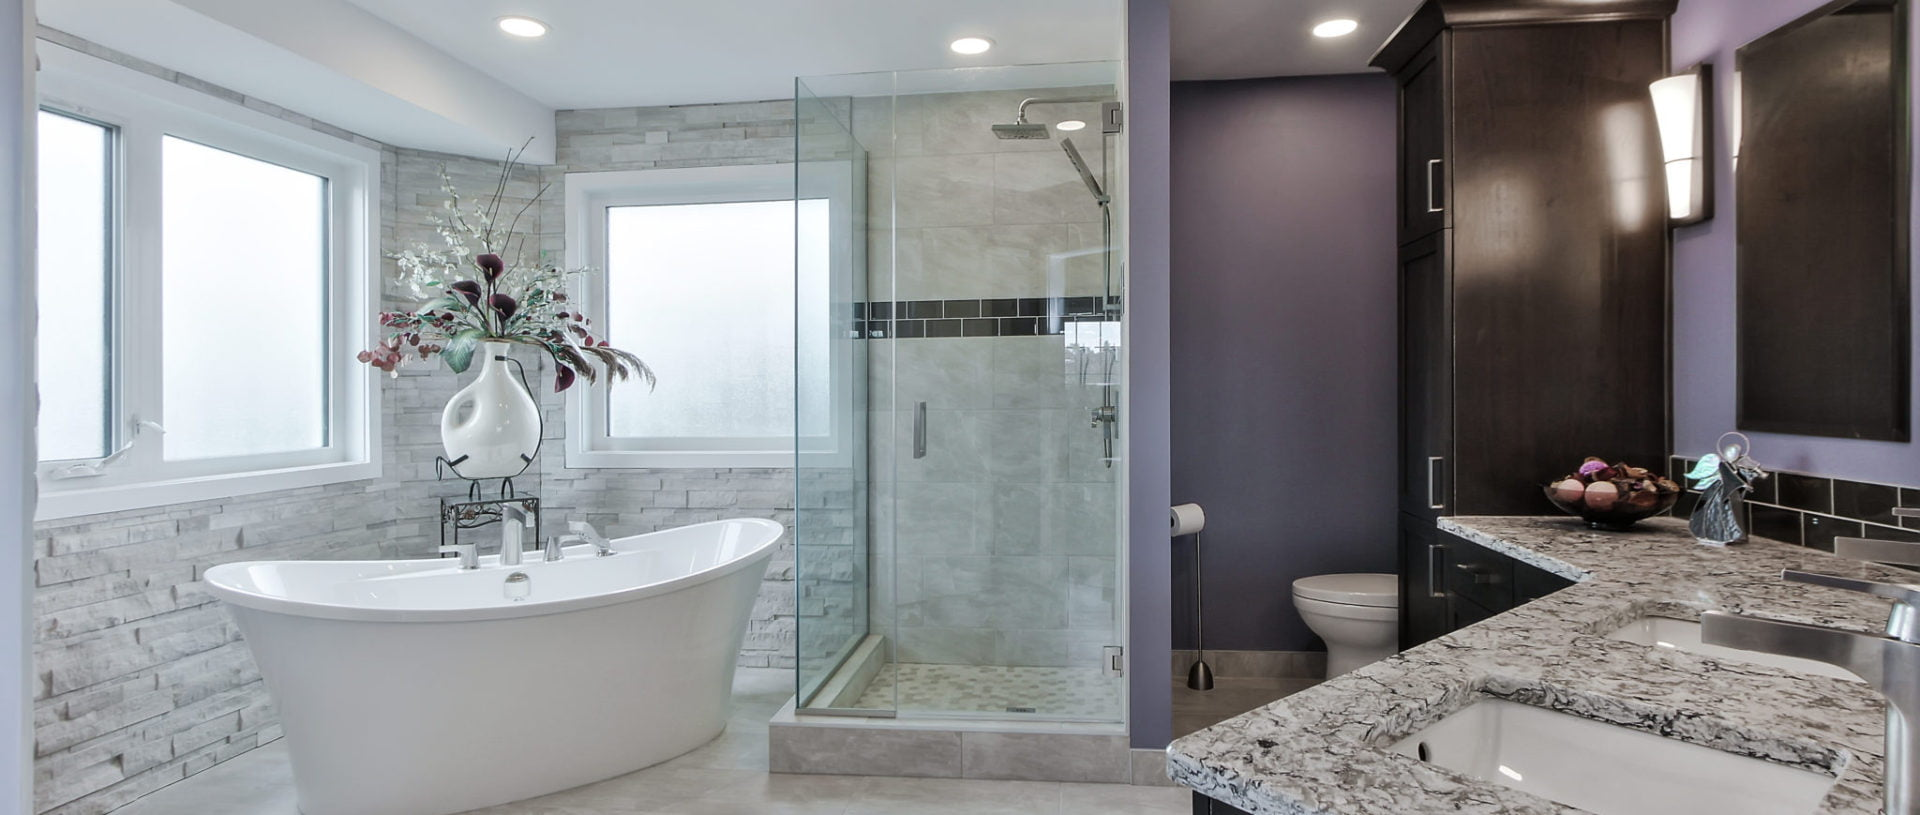 Complete Edmonton ensuite renovation with custom finishes